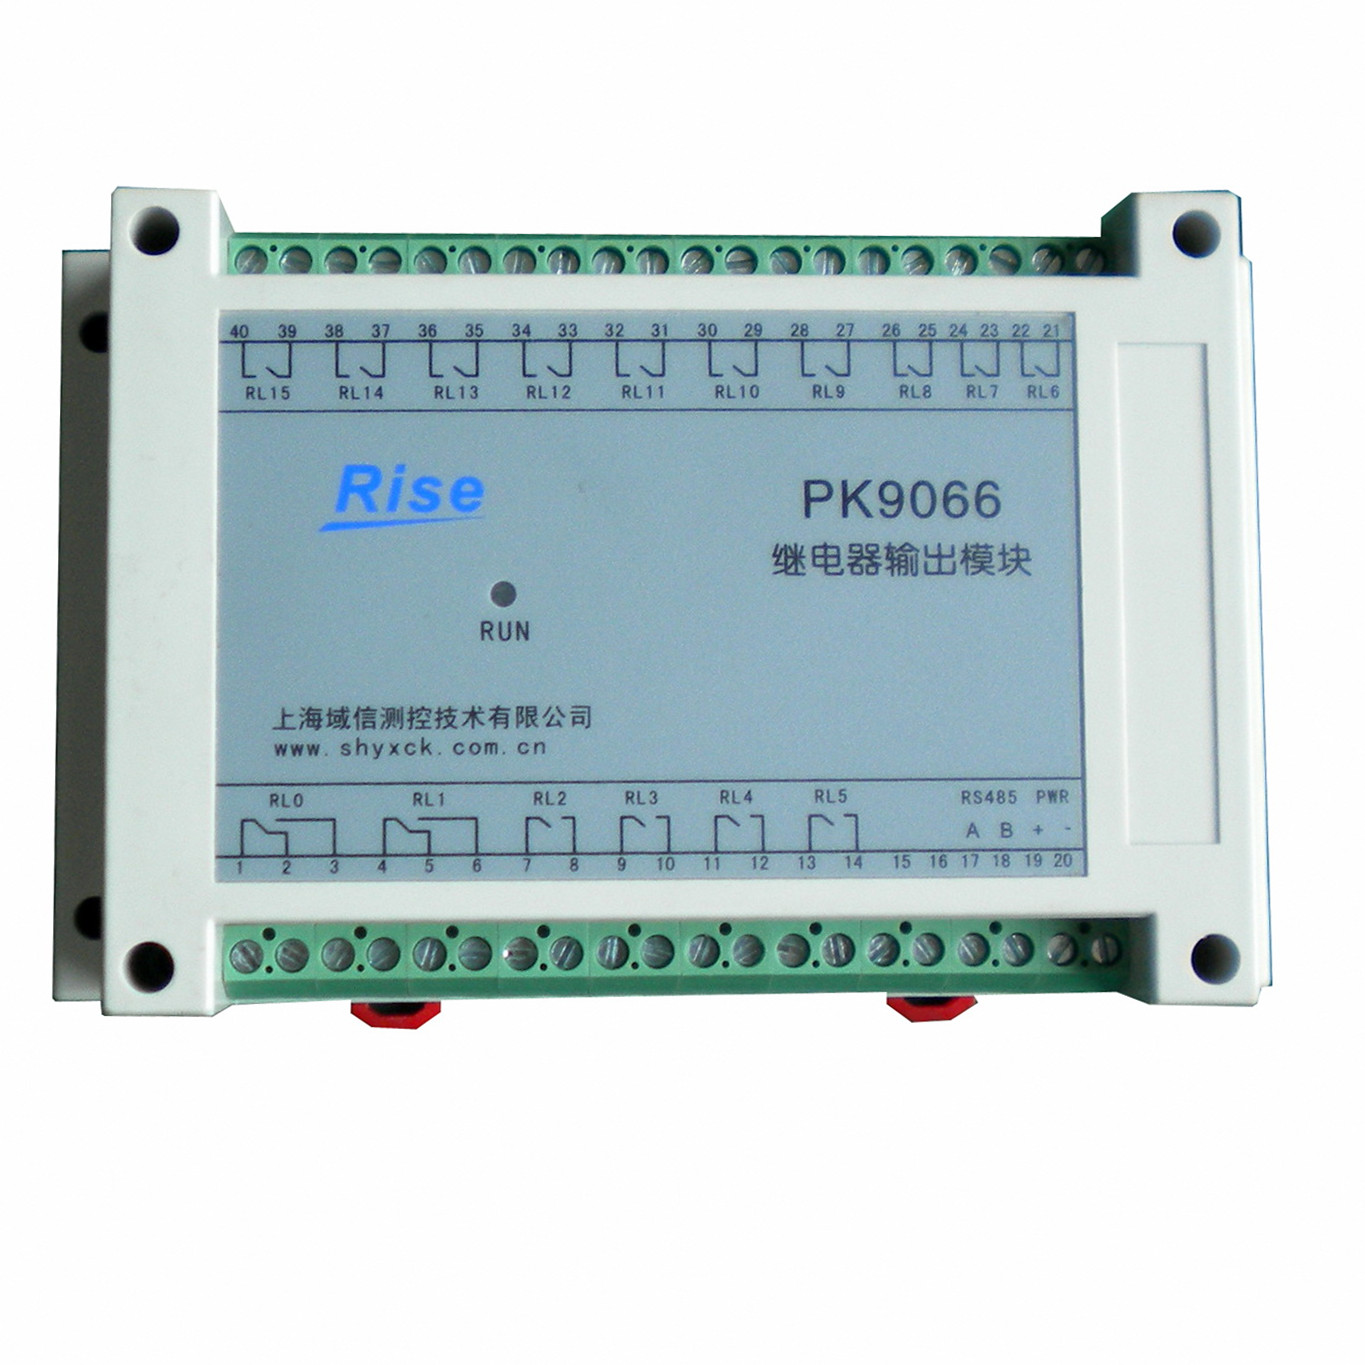 16 way relay switch output data acquisition module RS485 communication protocol MODBUS